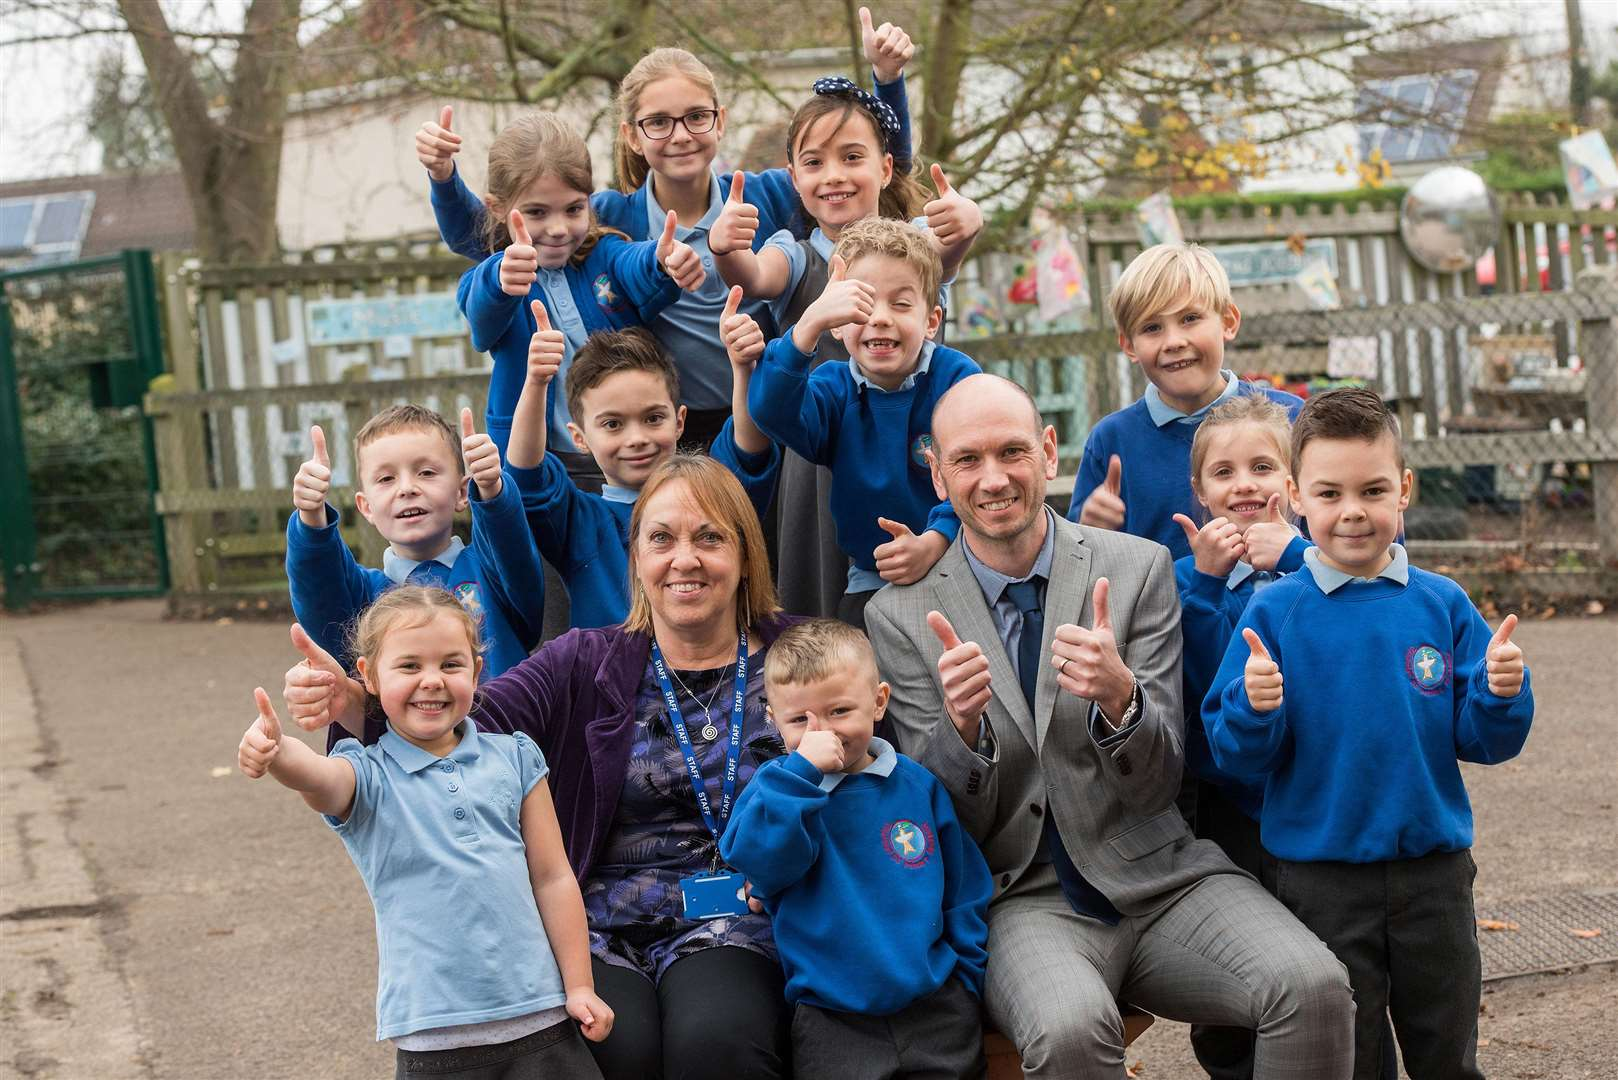 Thurston Primary School, have just been given a 'good' rating from Ofsted. Kathy Lambert and John Bayes the headteachers with pupils. Picture: Mark Westley.